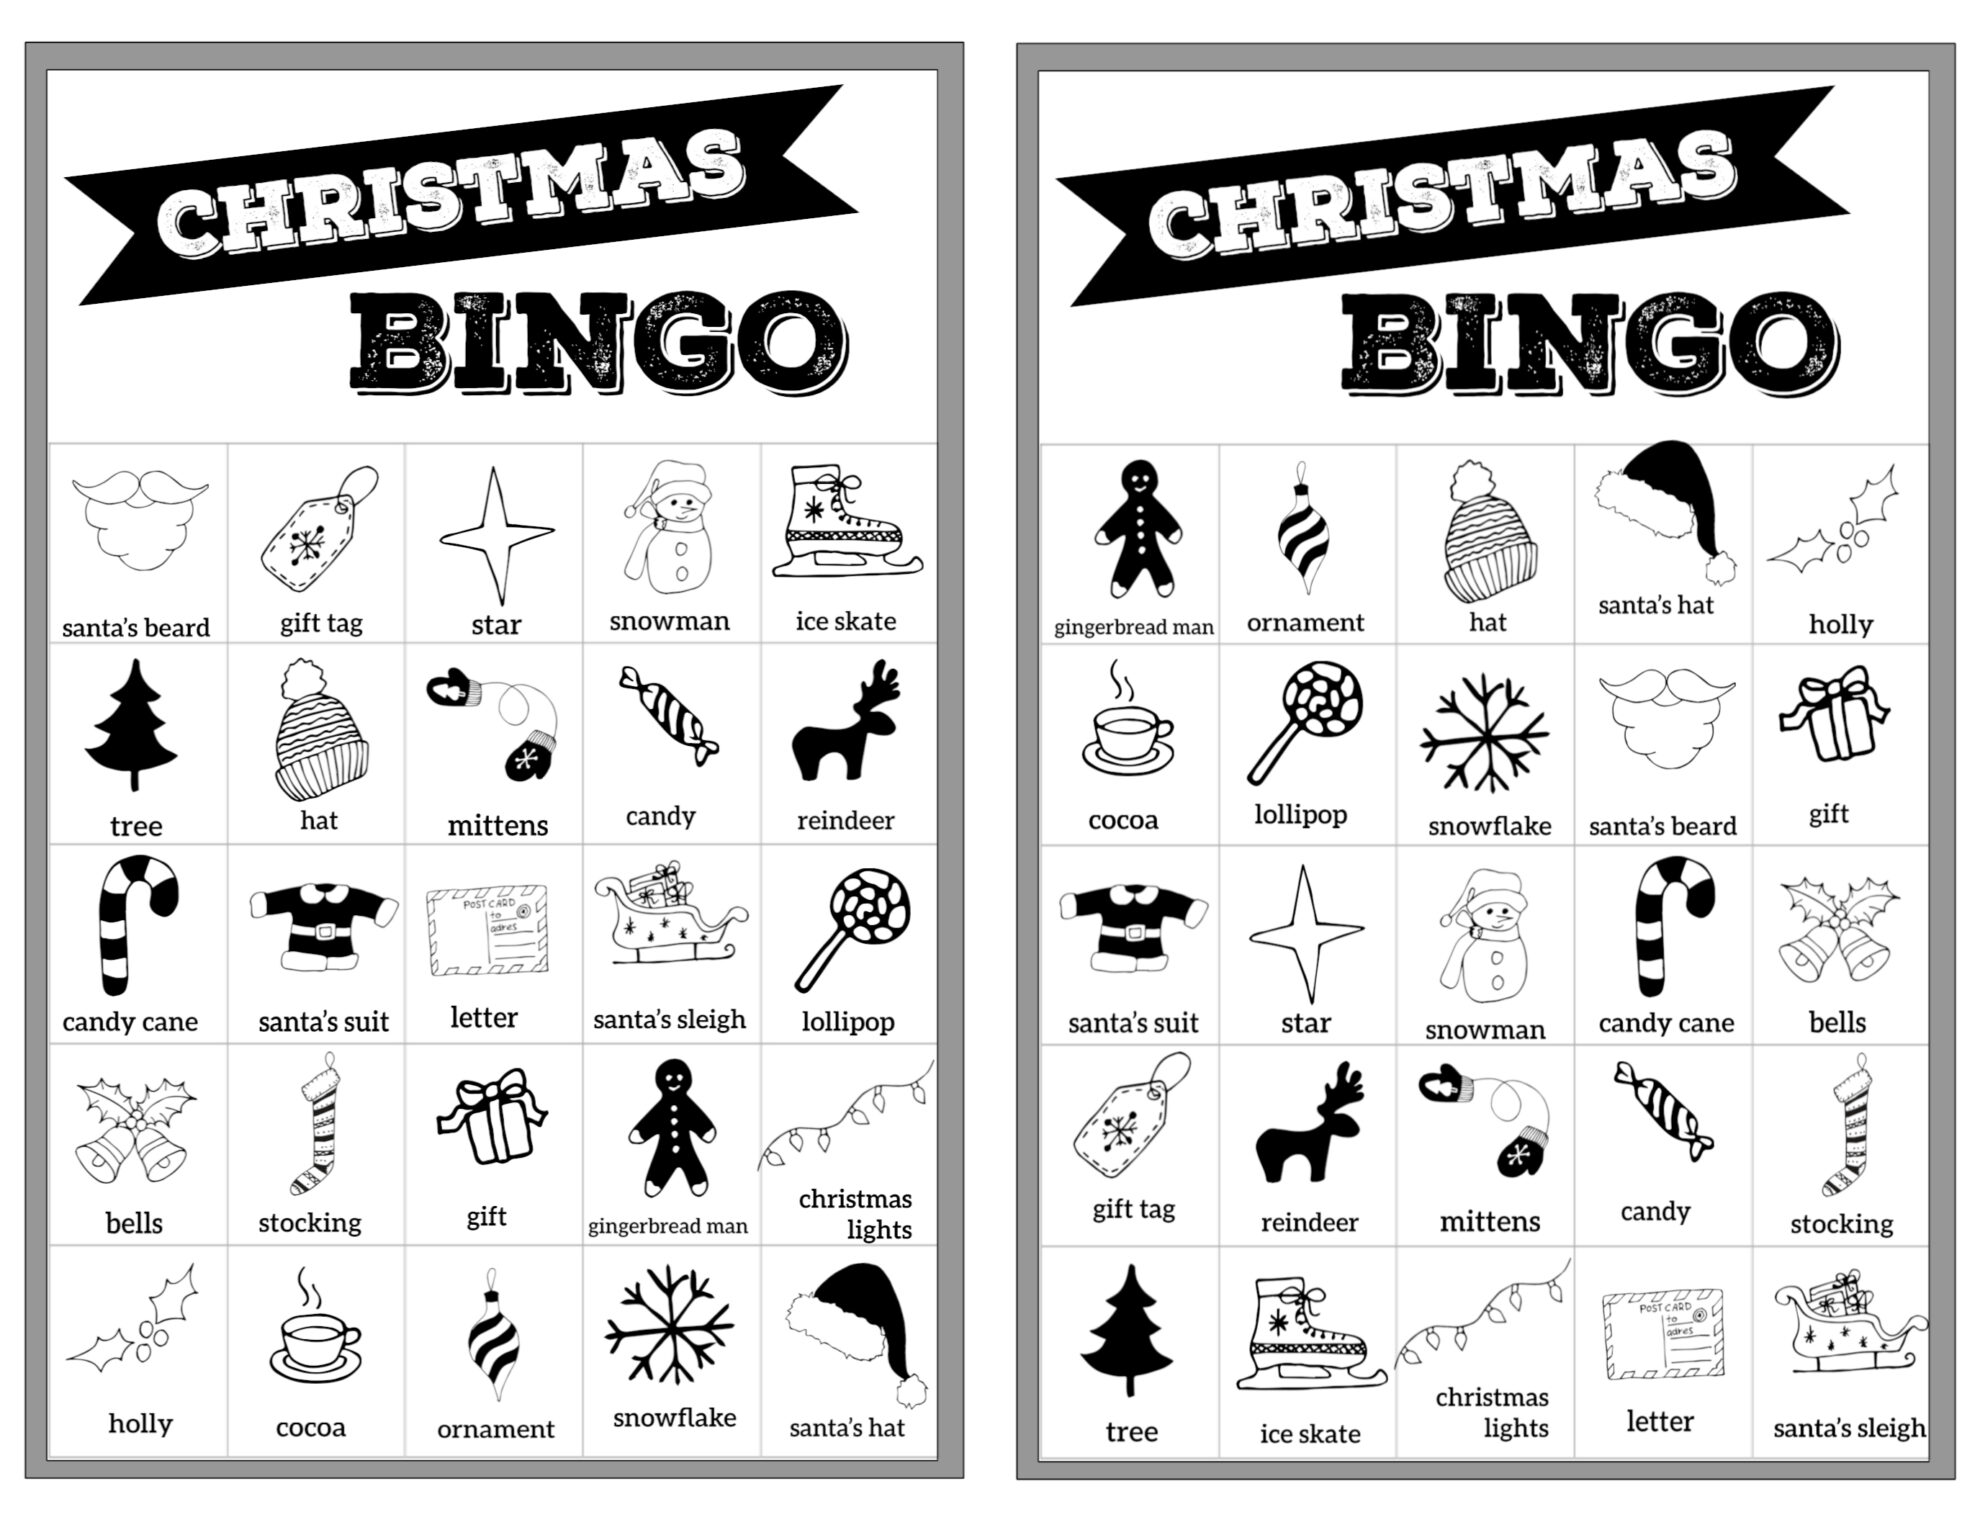 Free Christmas Bingo Printable Cards Paper Trail Design